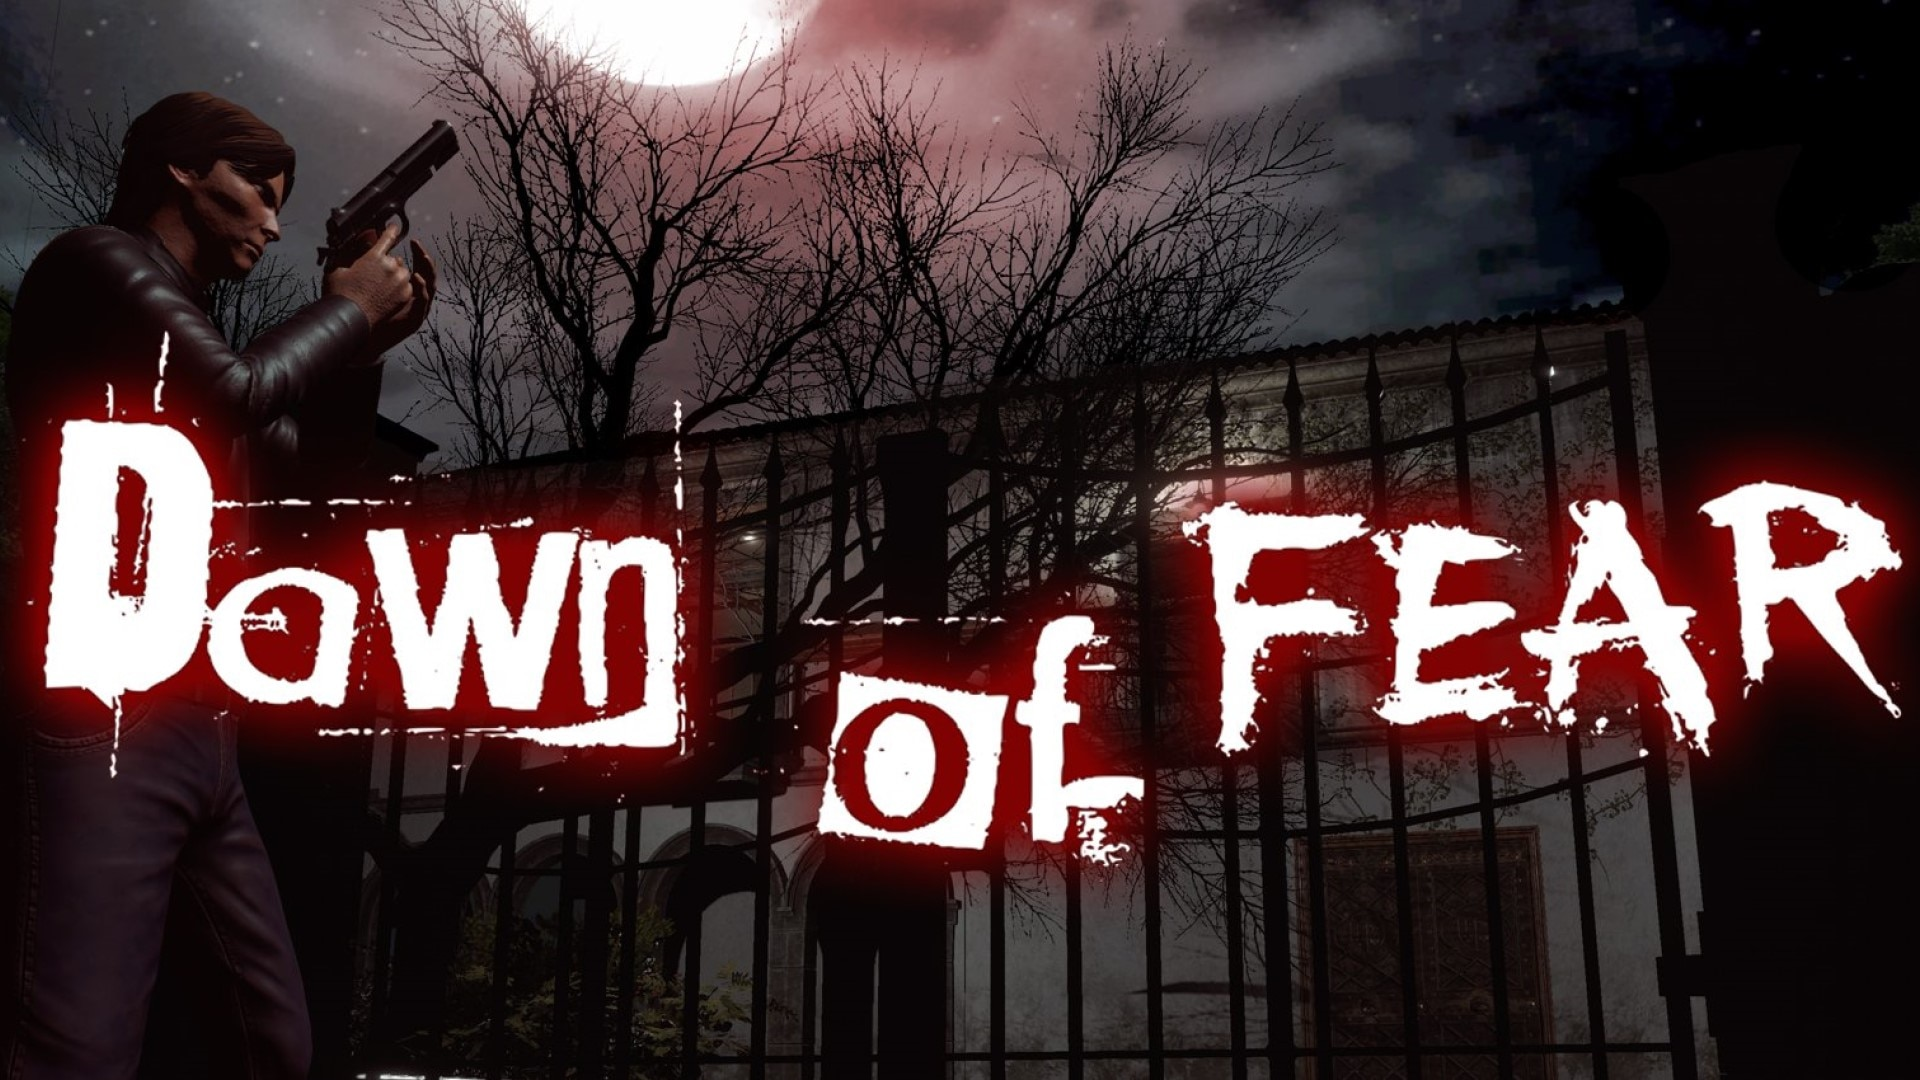 main 9jd8 dawn of fear - DAWN OF FEAR REVIEW – GOLD STAR FOR EFFORT